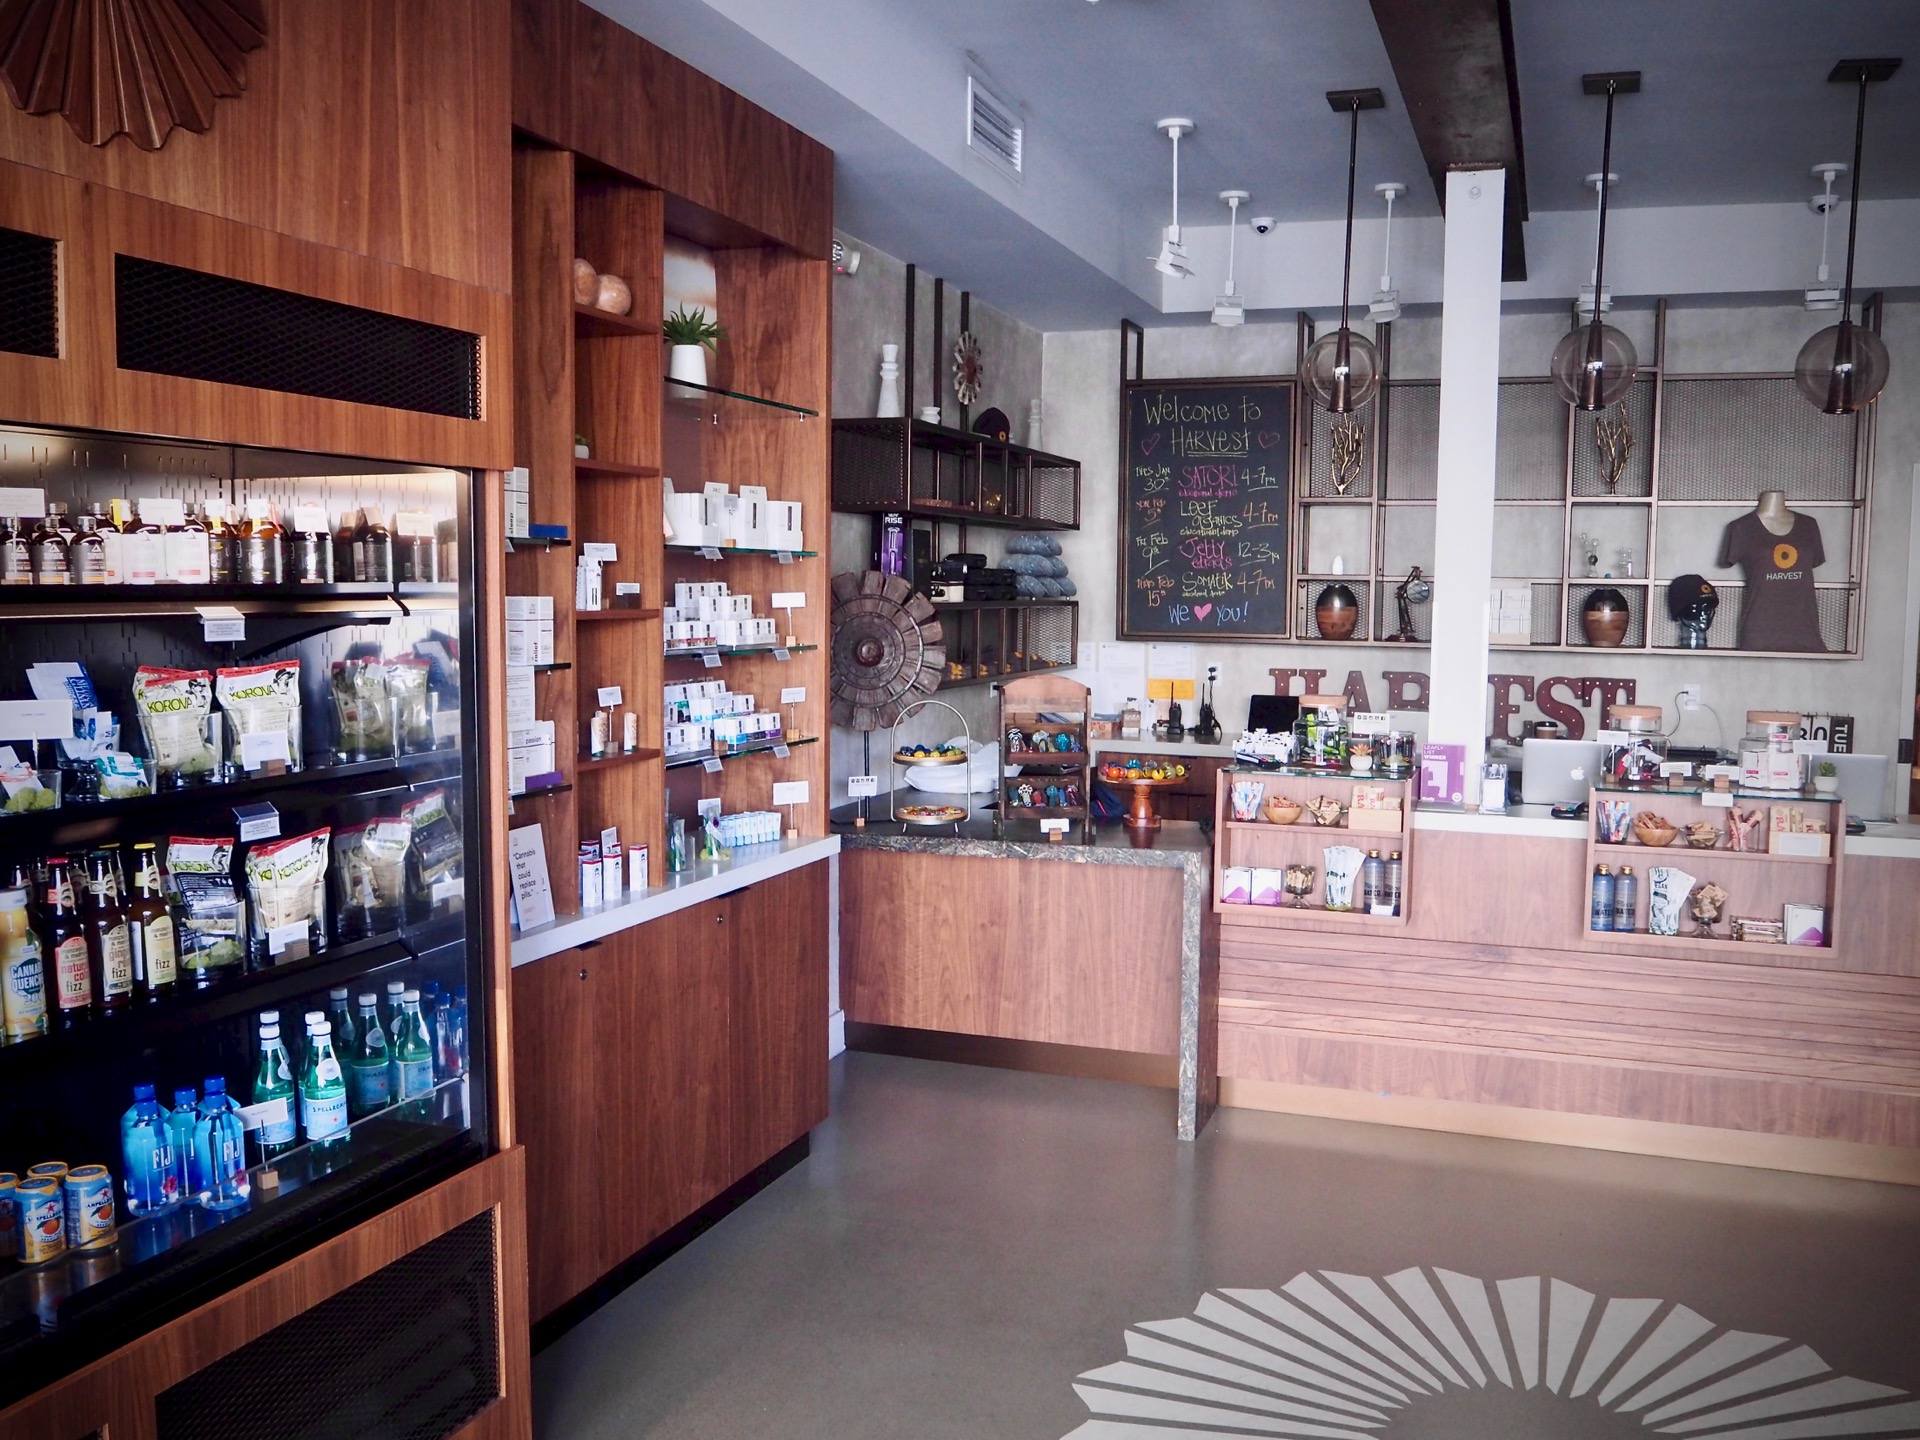 Harvest-Off-Mission-San-Francisco-Cannabis-Dispensary-Interior-Left-Side.jpg